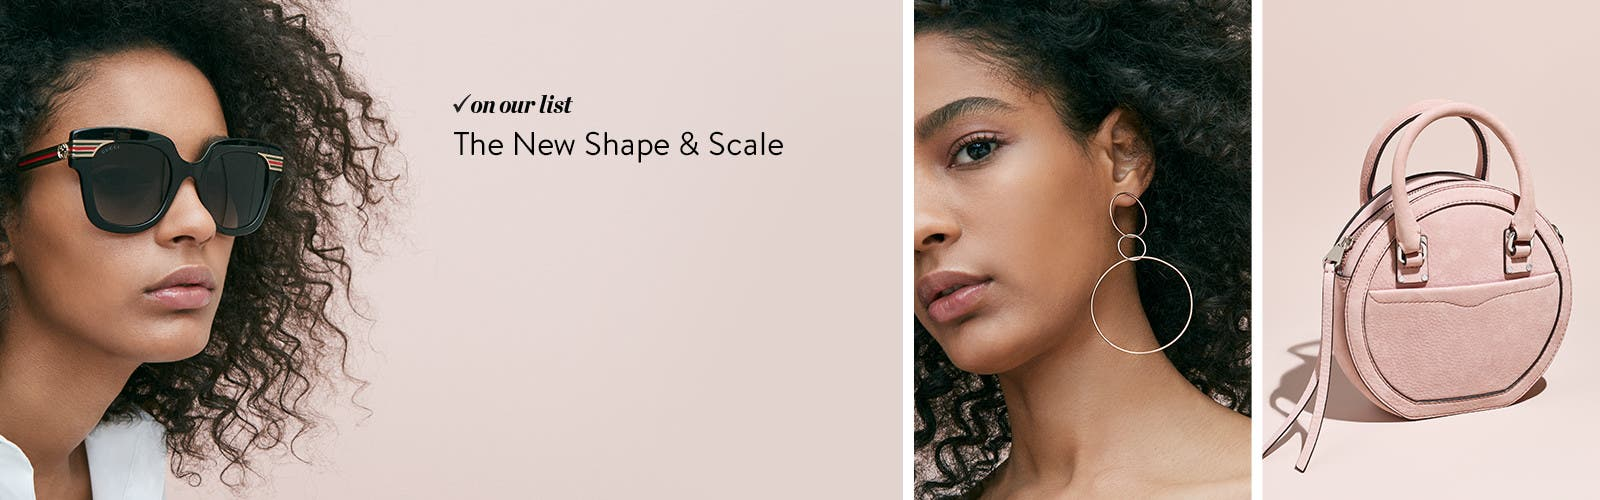 The new shape and scale.